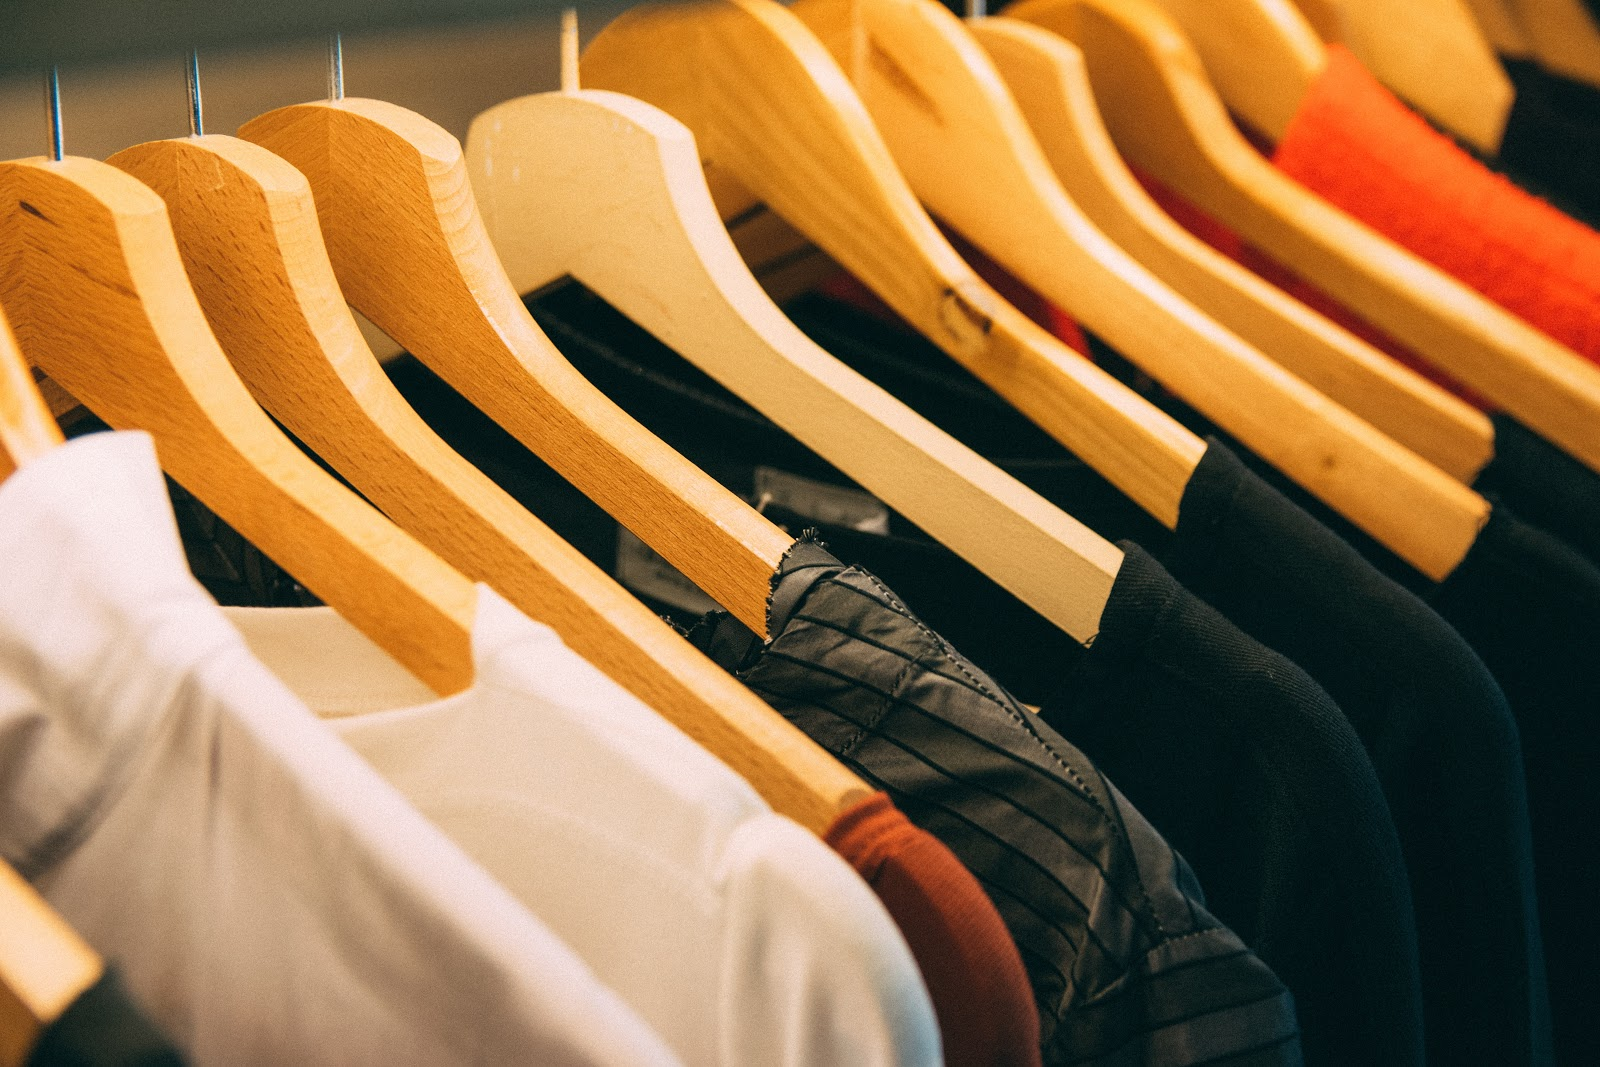 Different shades of clothes on wooden hangers meant to encourage you to reduce waste by not buying new clothes